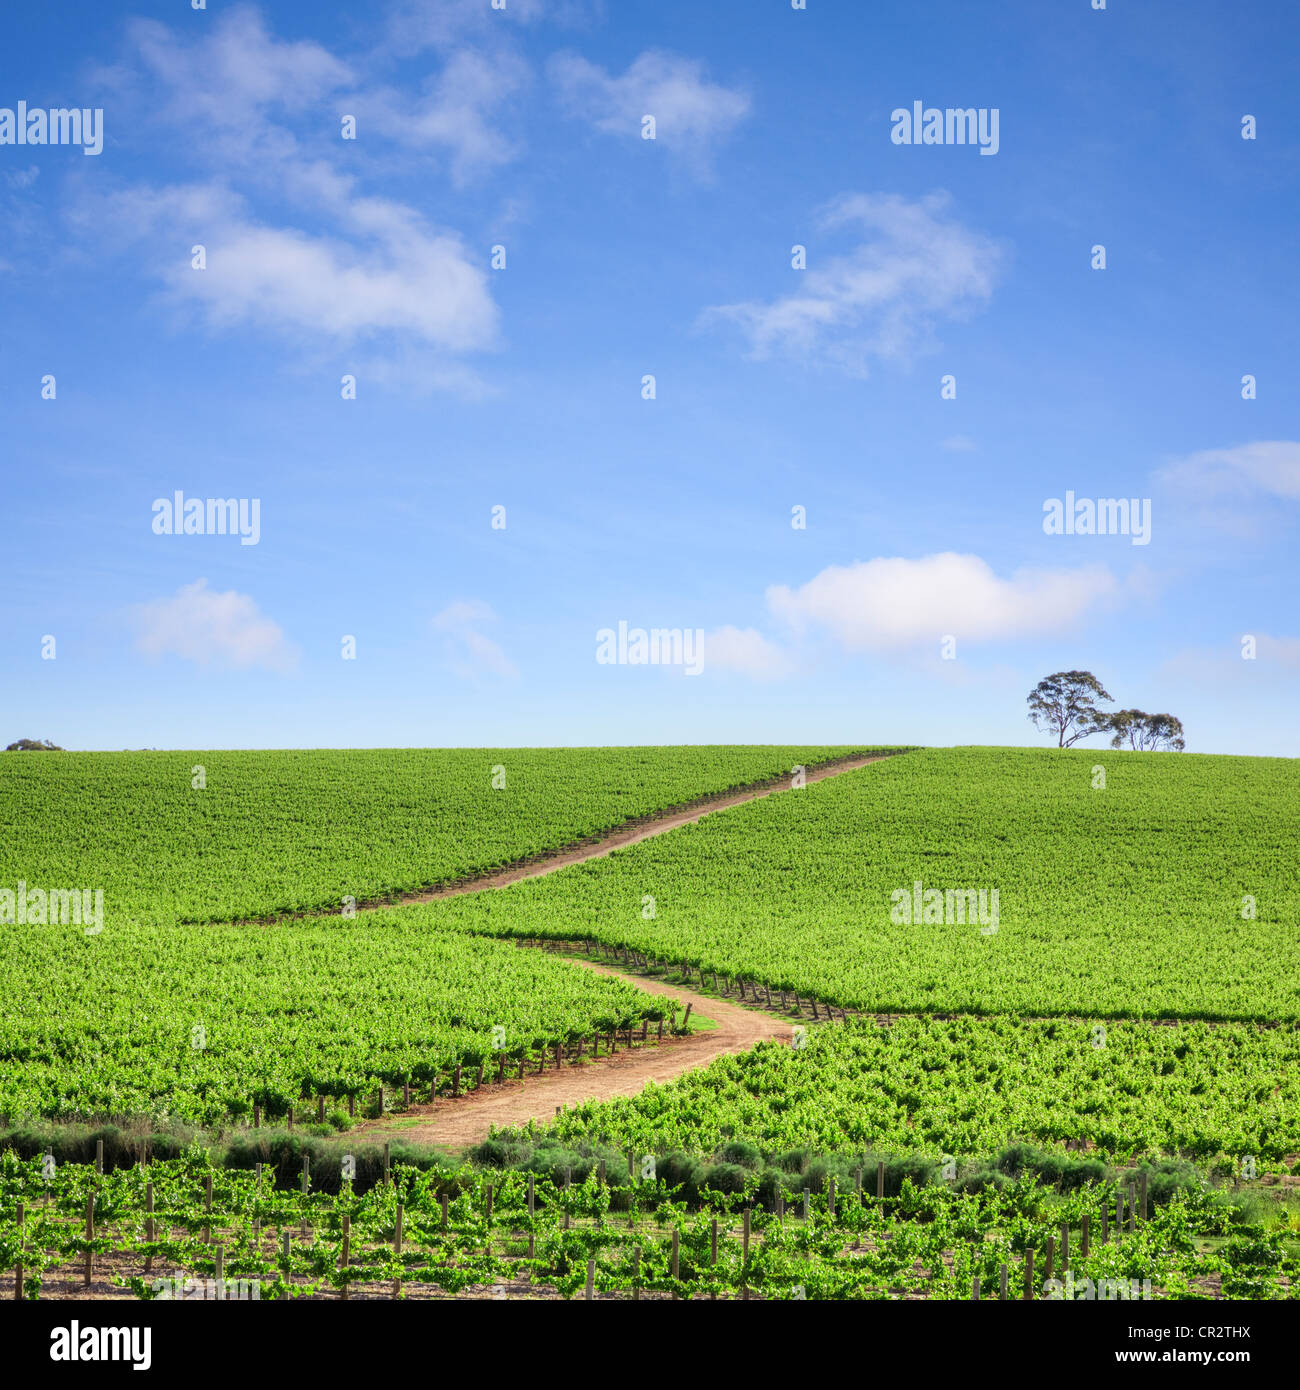 Vineyard in the Clare Valley, South Australia Stock Photo